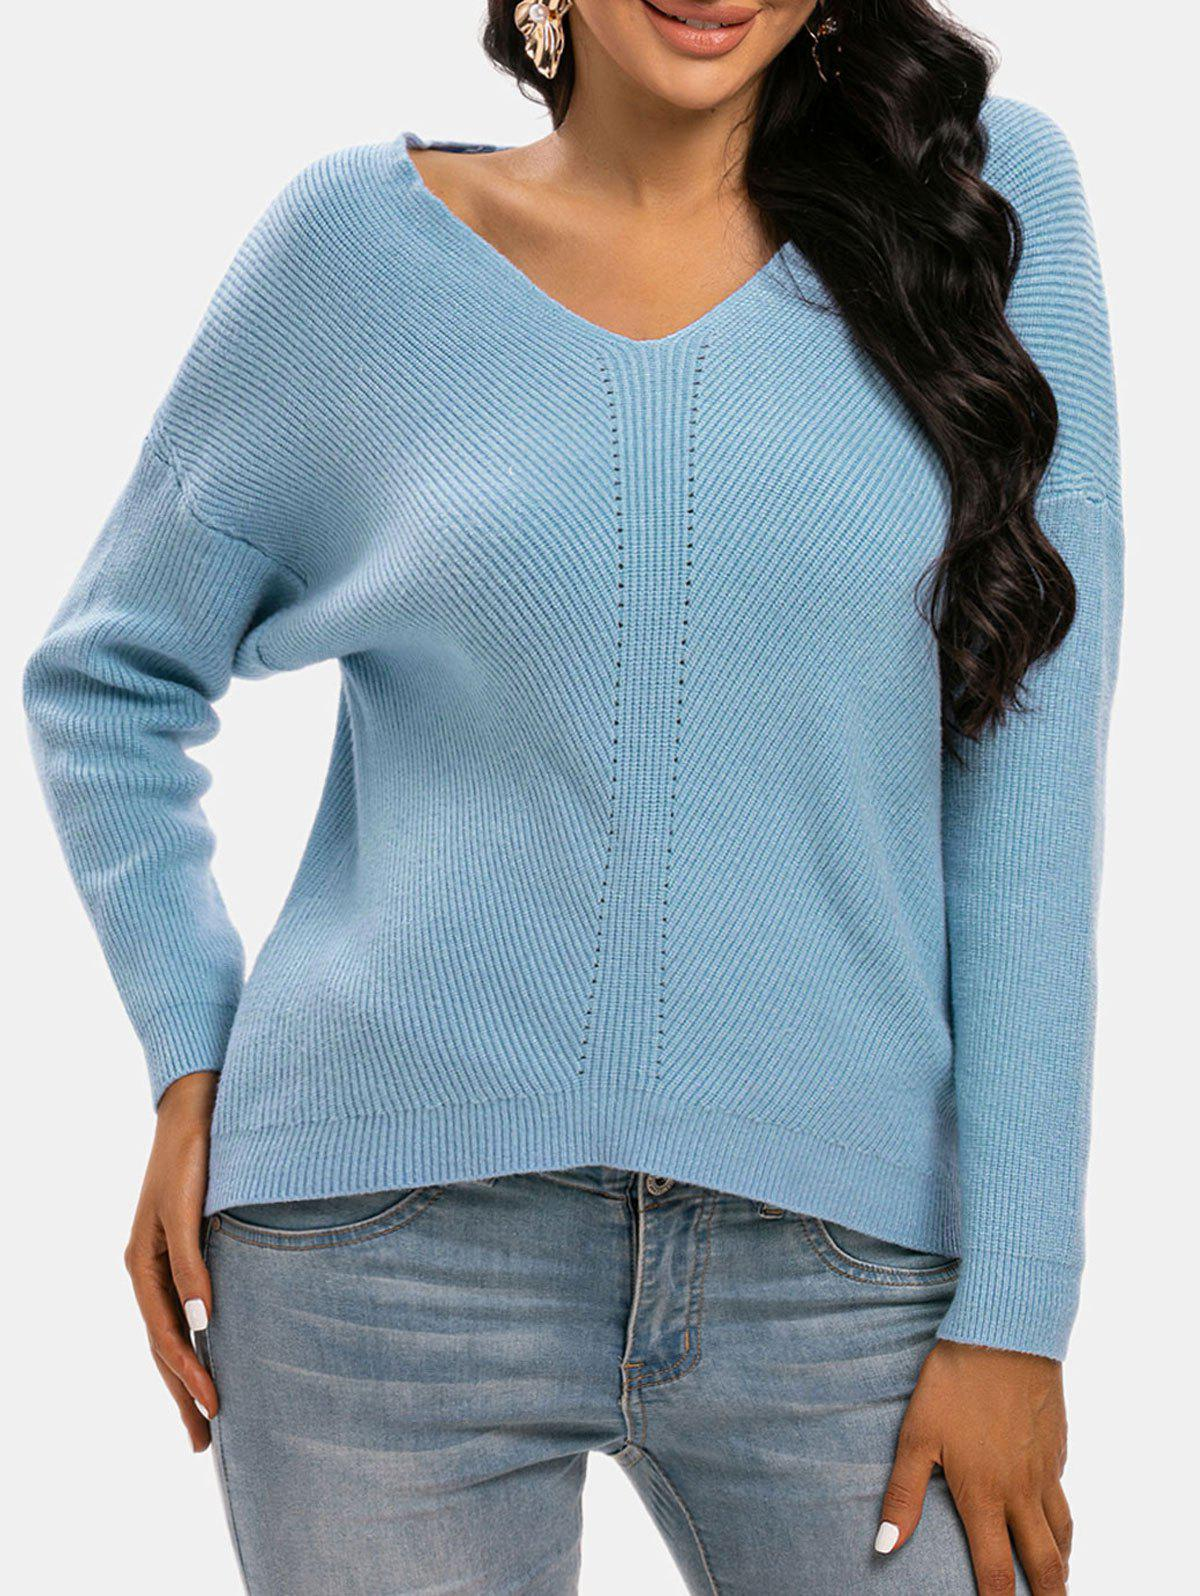 Drop Shoulder Pointelle Textured Knit Sweater - BLUE ONE SIZE